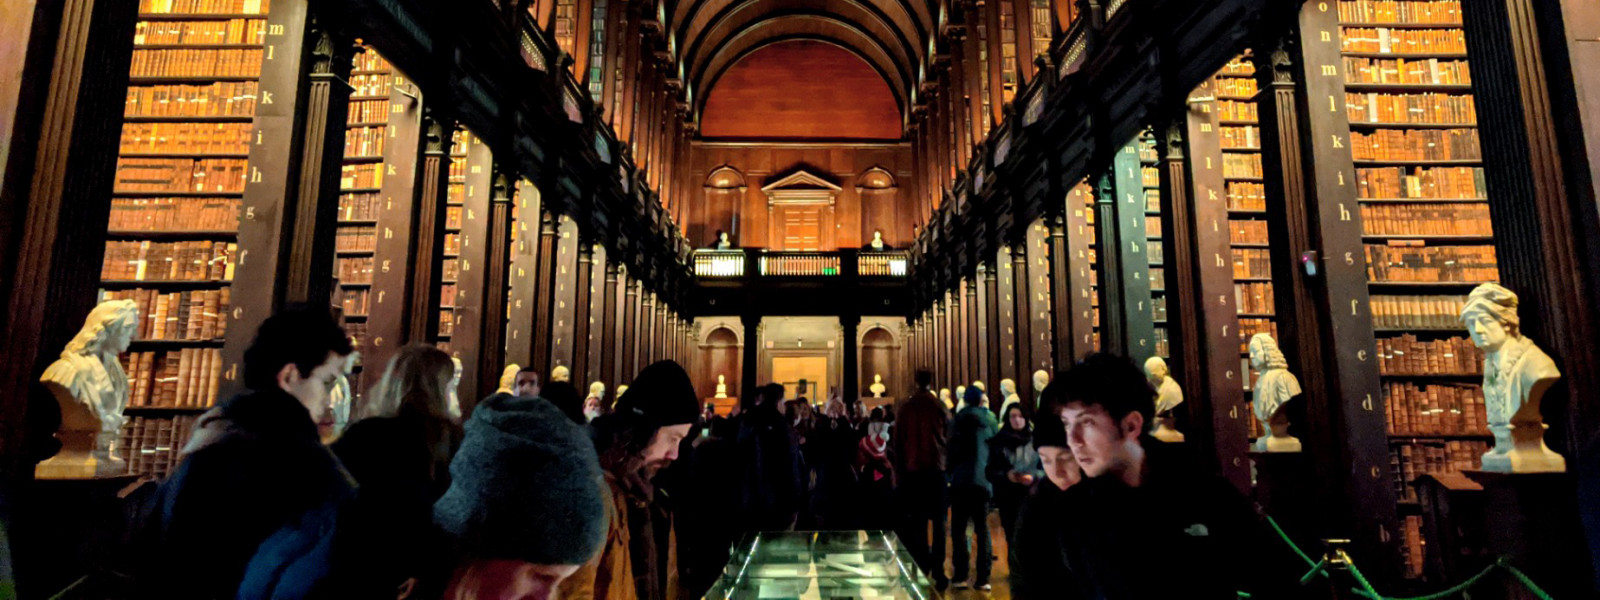 Visitors tour the wood-paneled library.